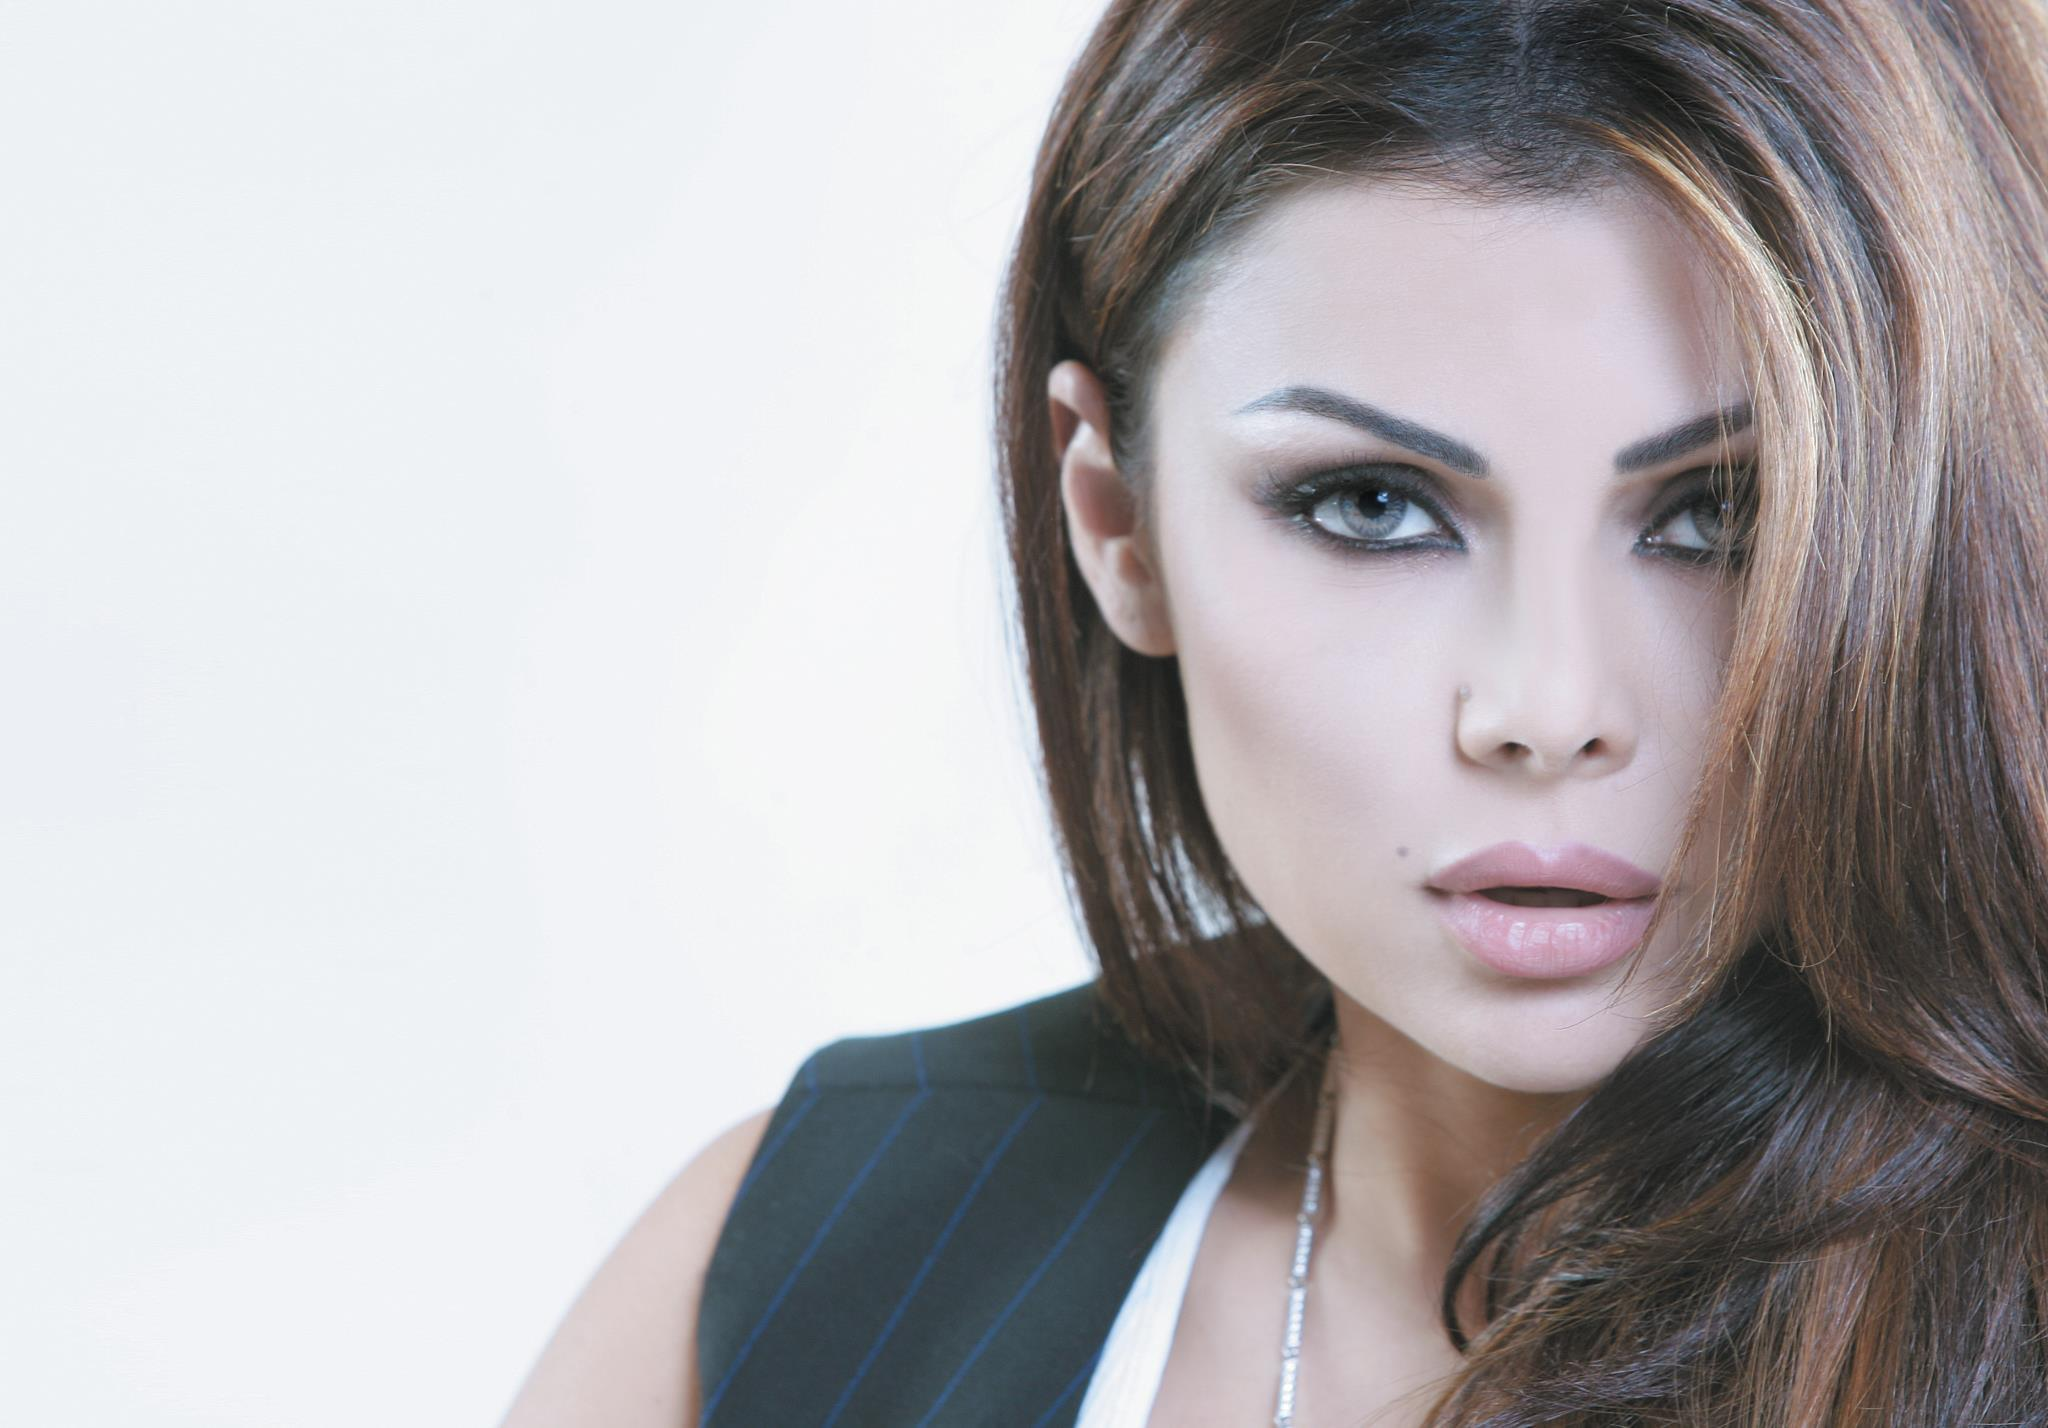 haifa wehbe makeup hd wallpaper 638